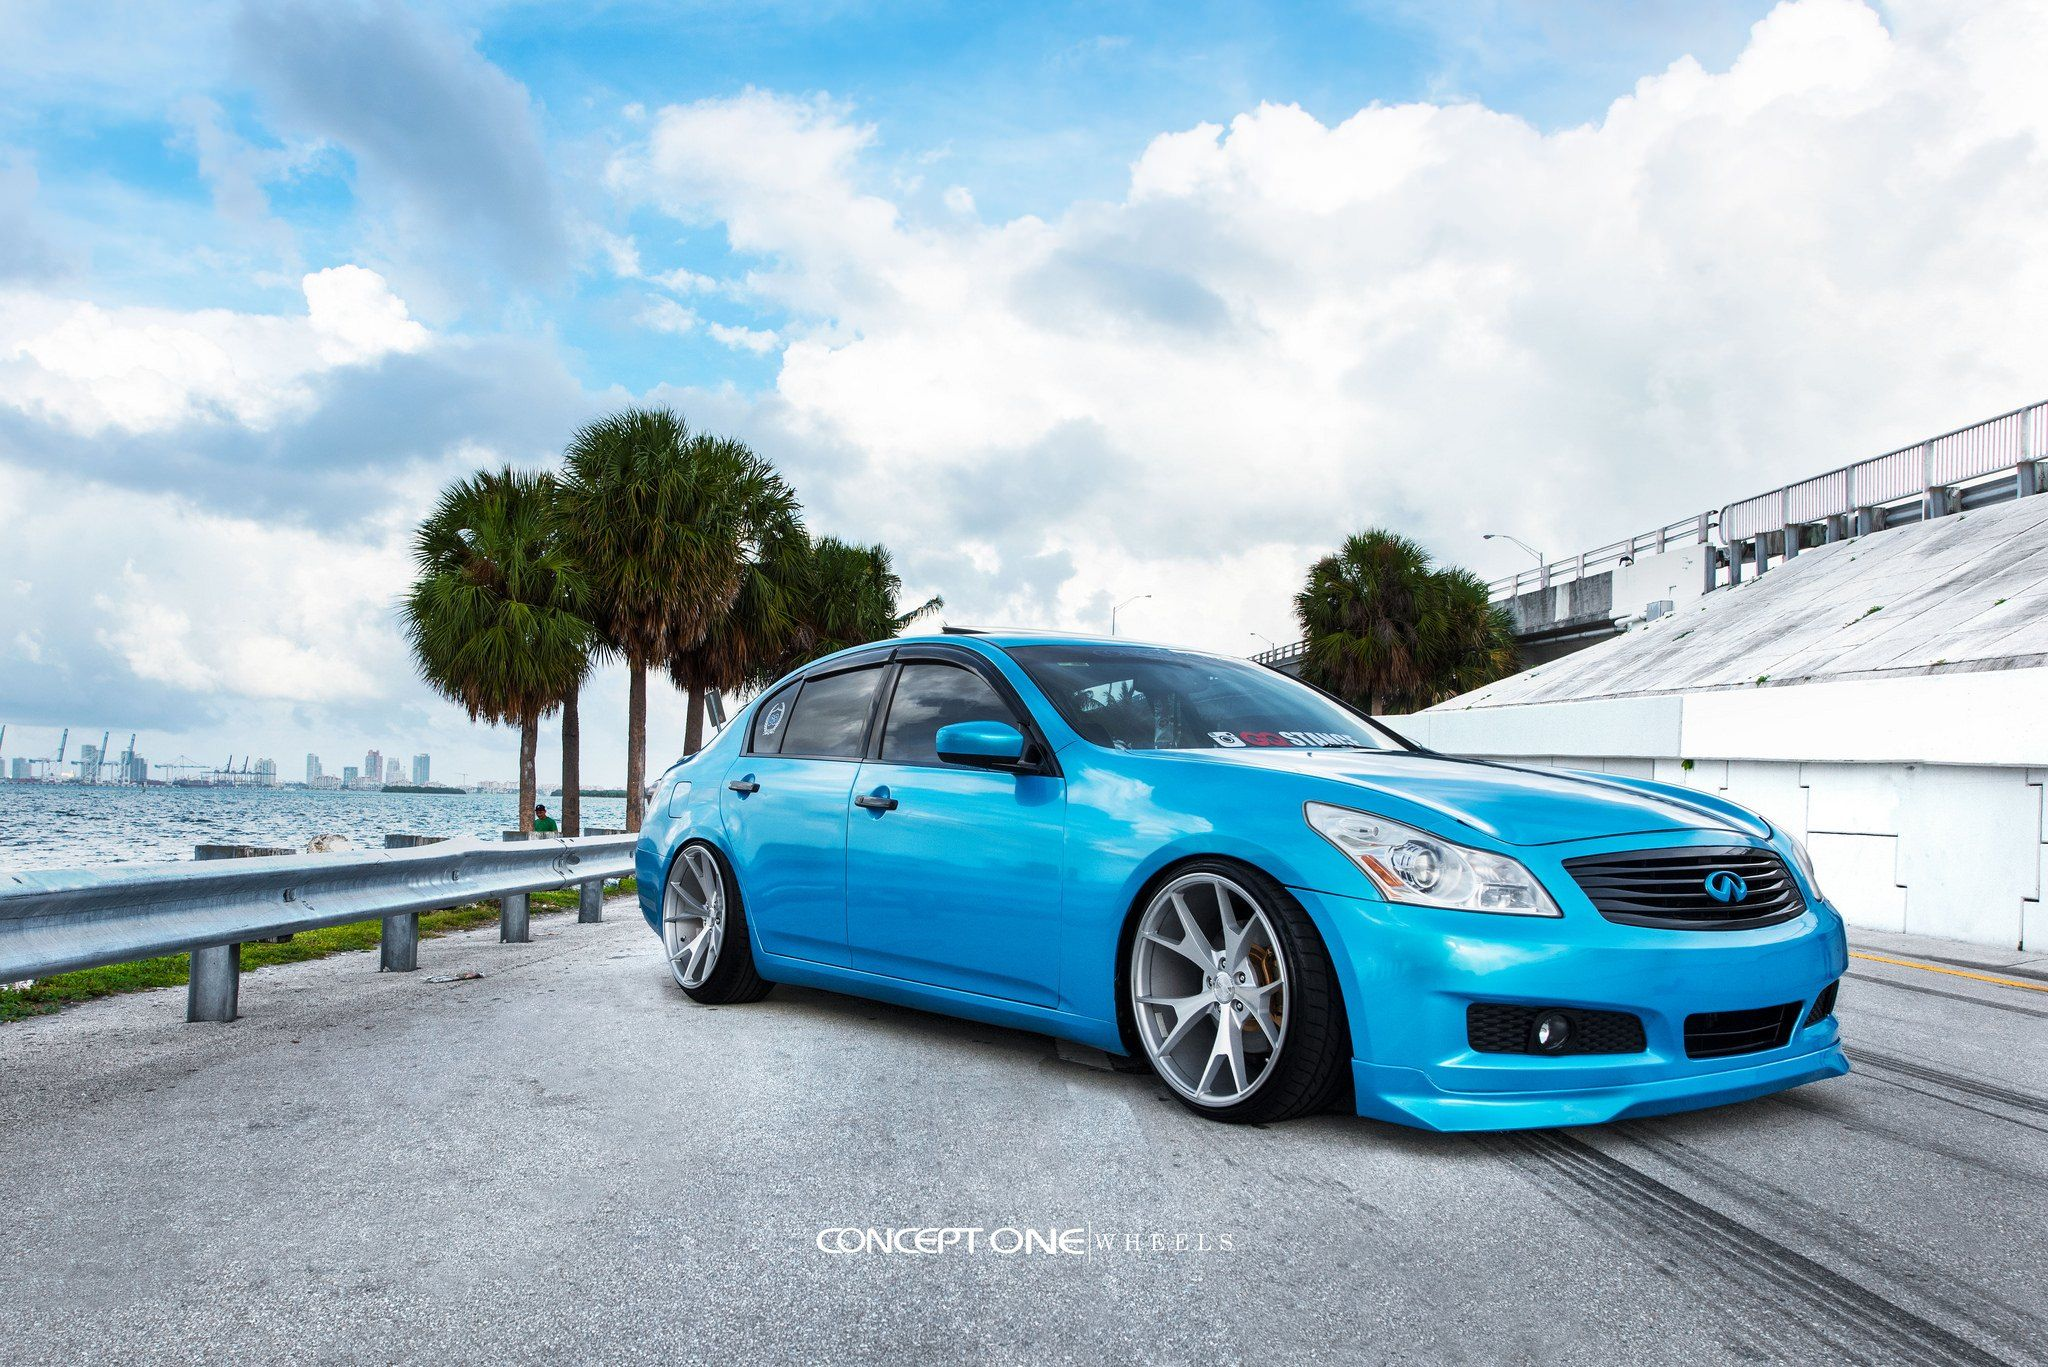 Baby Blue Infiniti G35 Proudly Wears Custom Grille With Emblem And More Baby Blue Infiniti Emblems